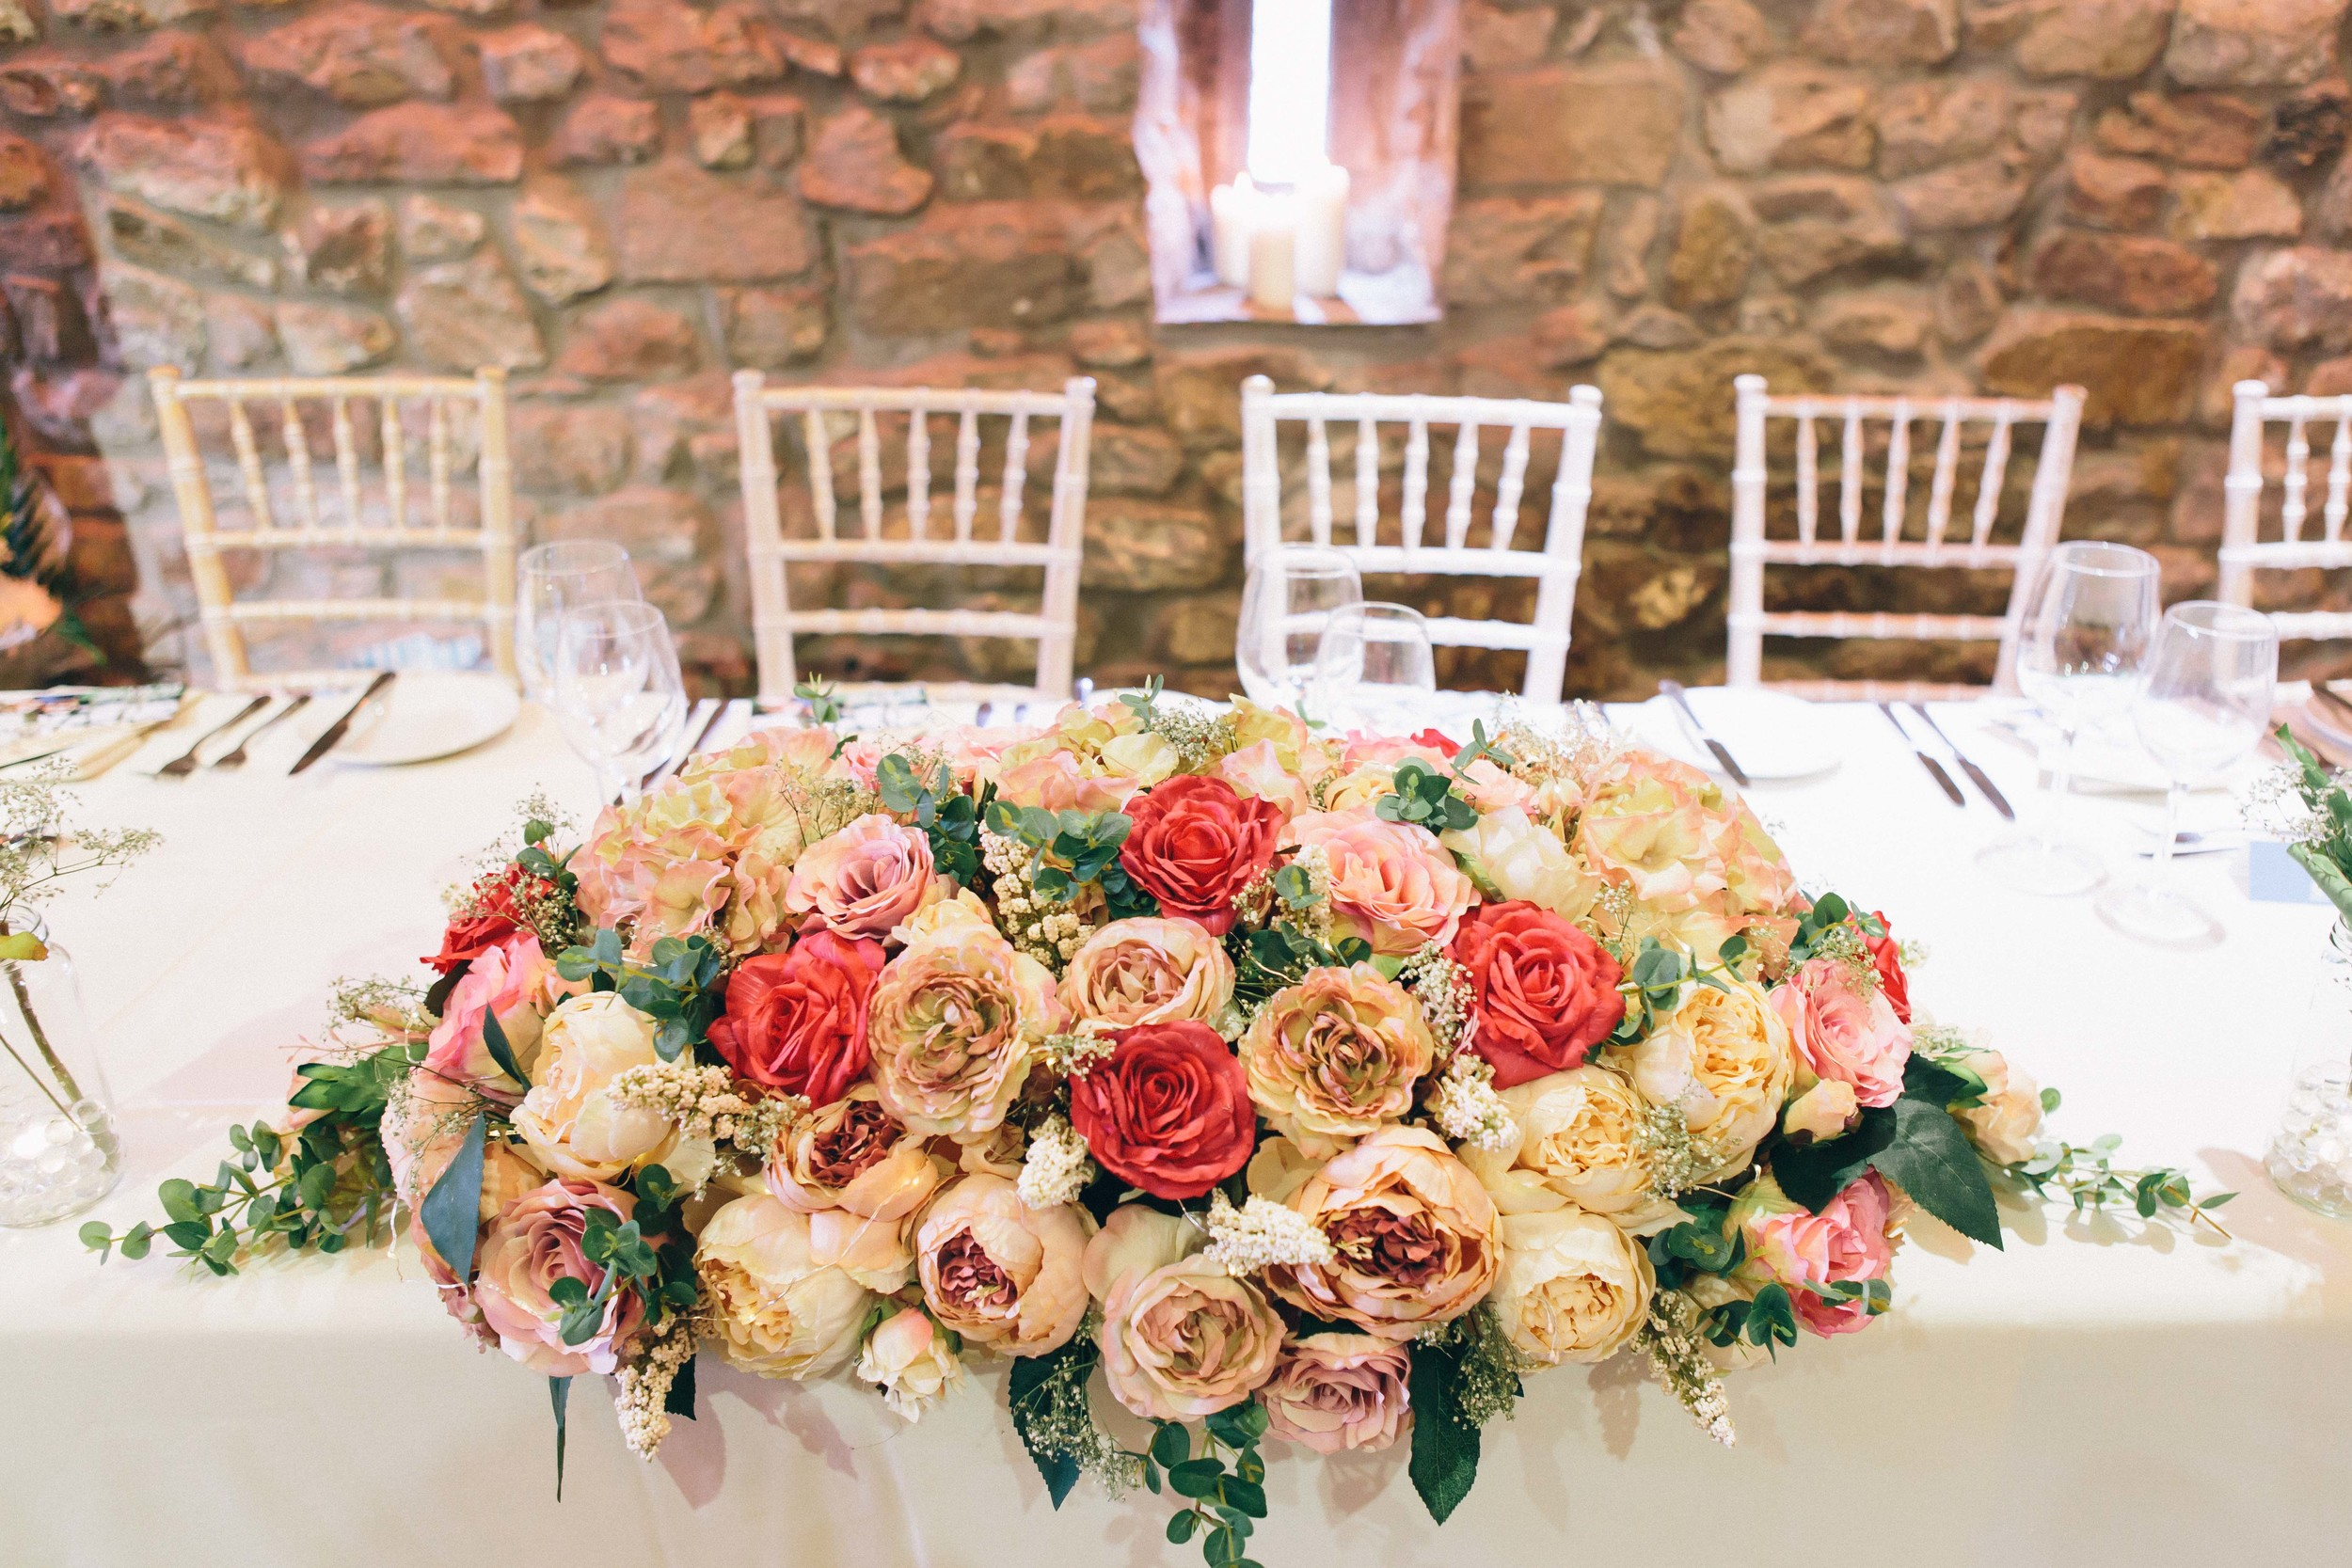 Wedding flowers, table decorations